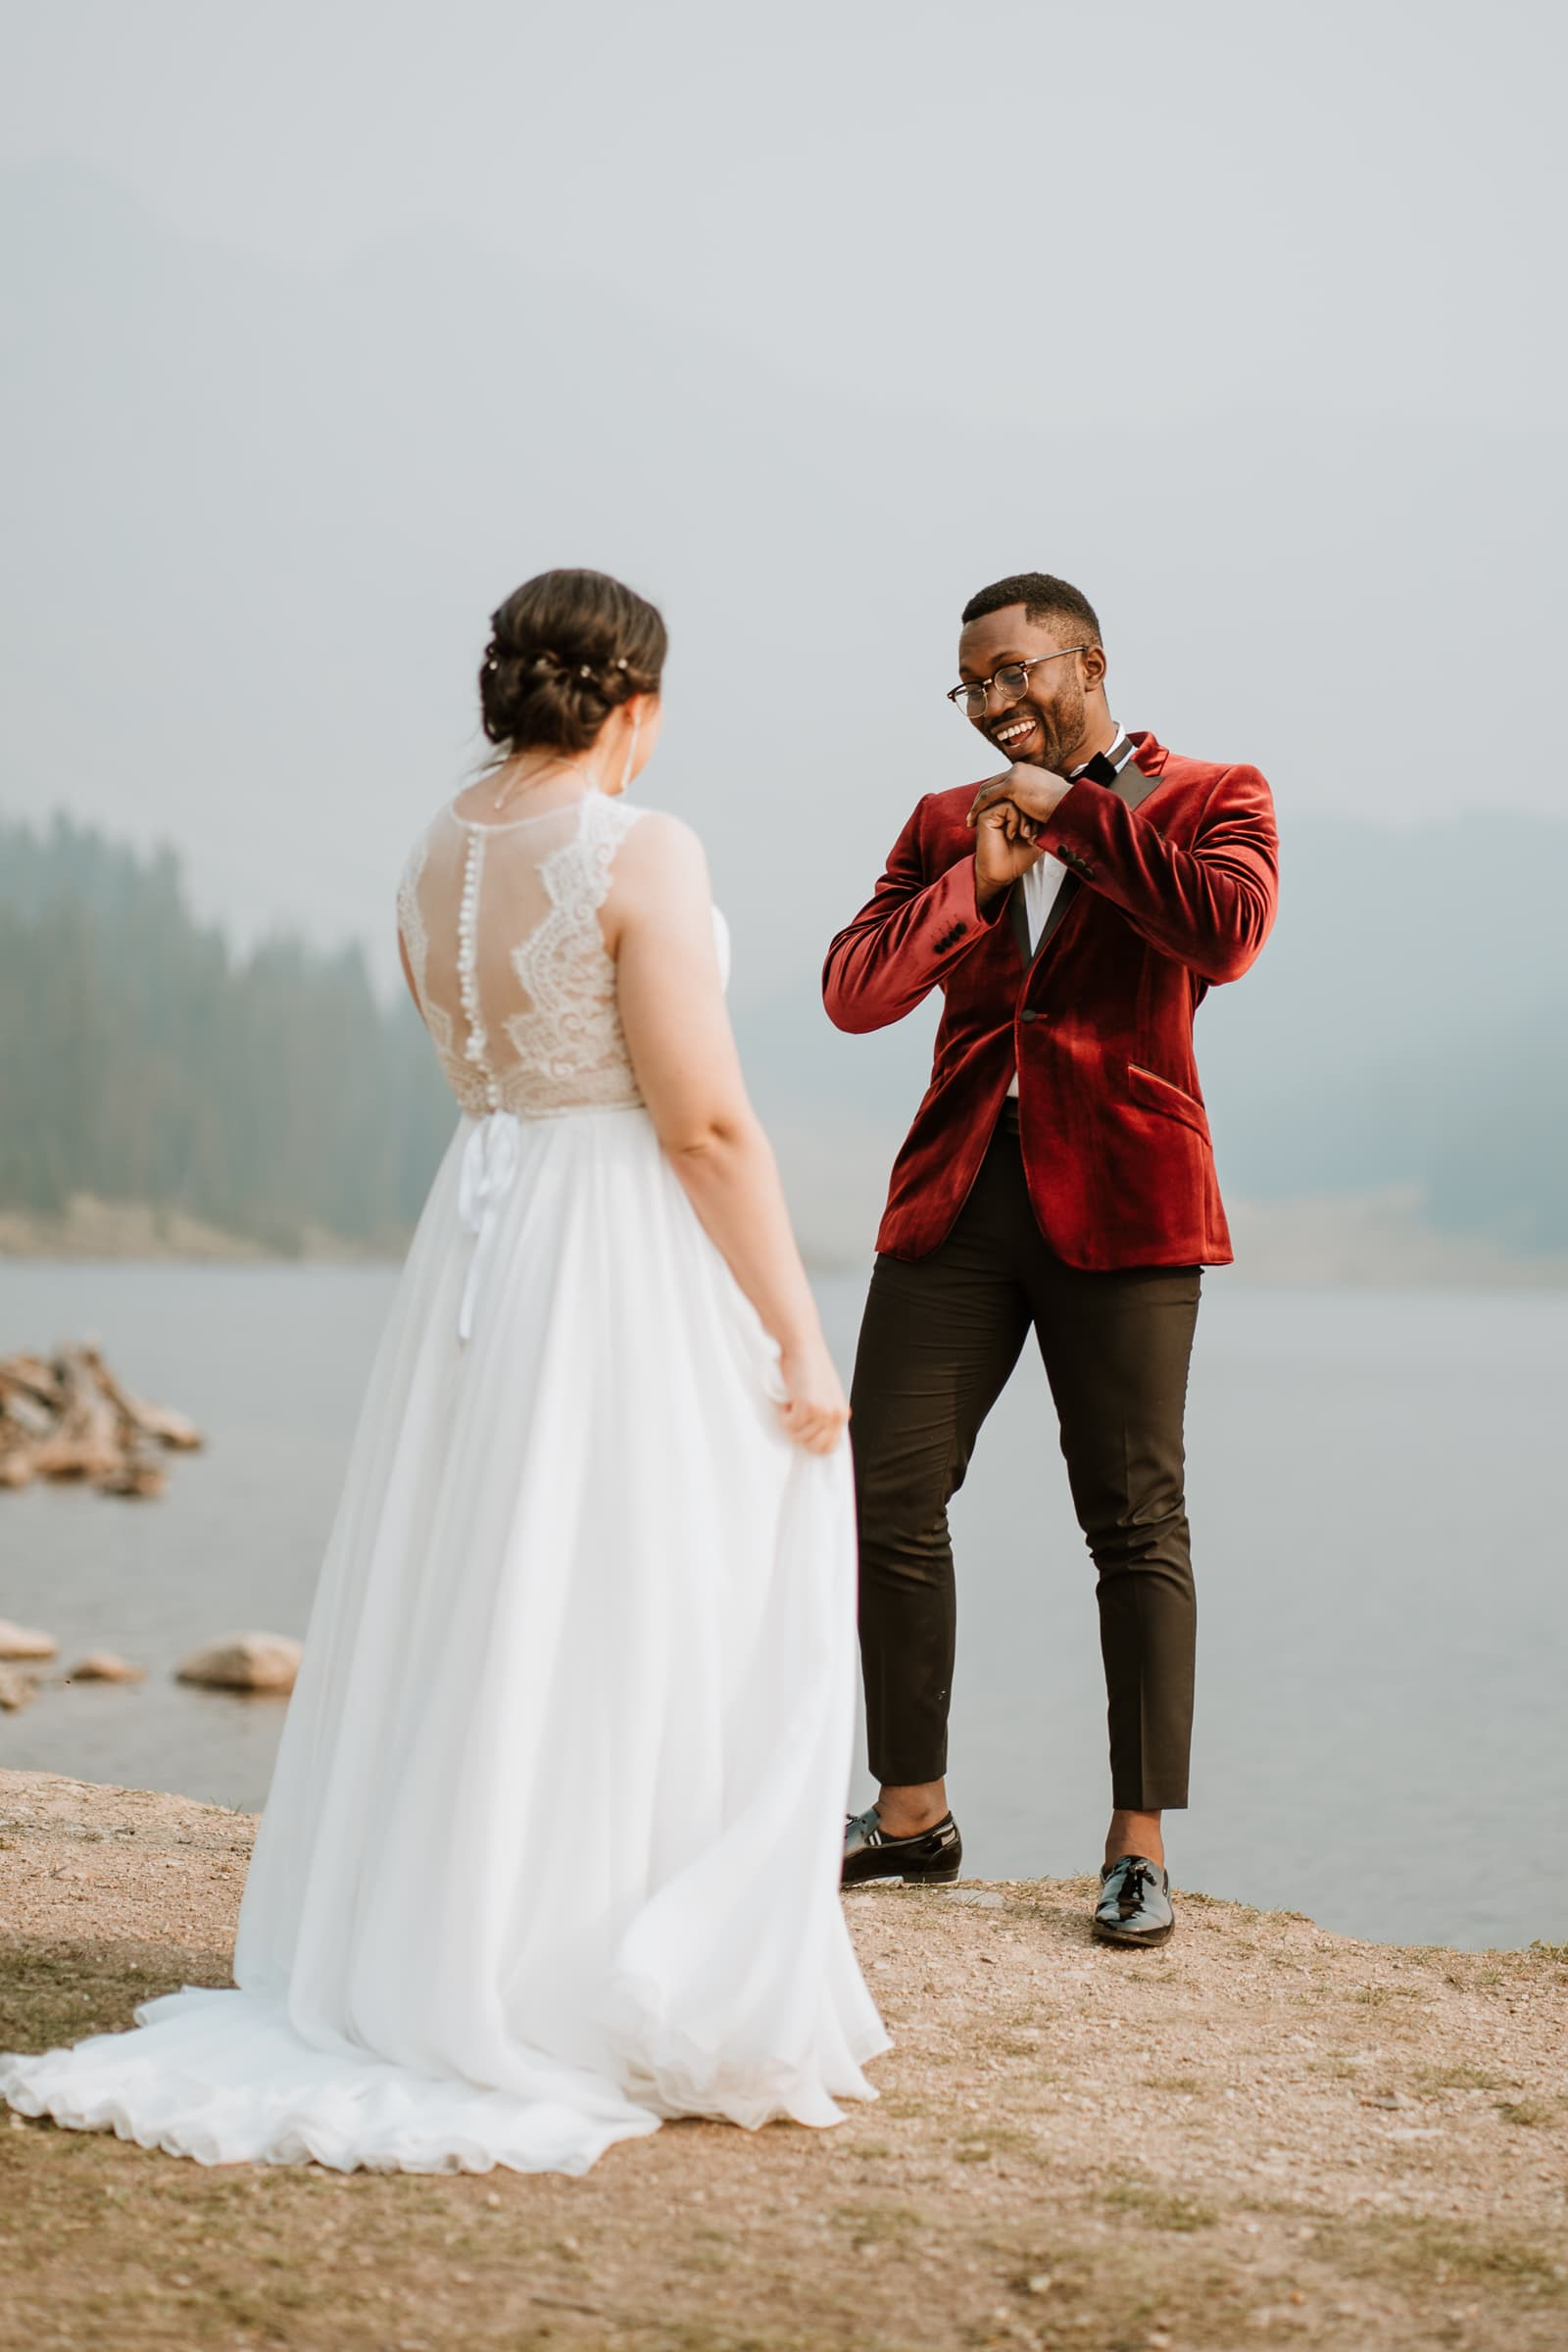 Groom is astounded after seeing his bride during their first look